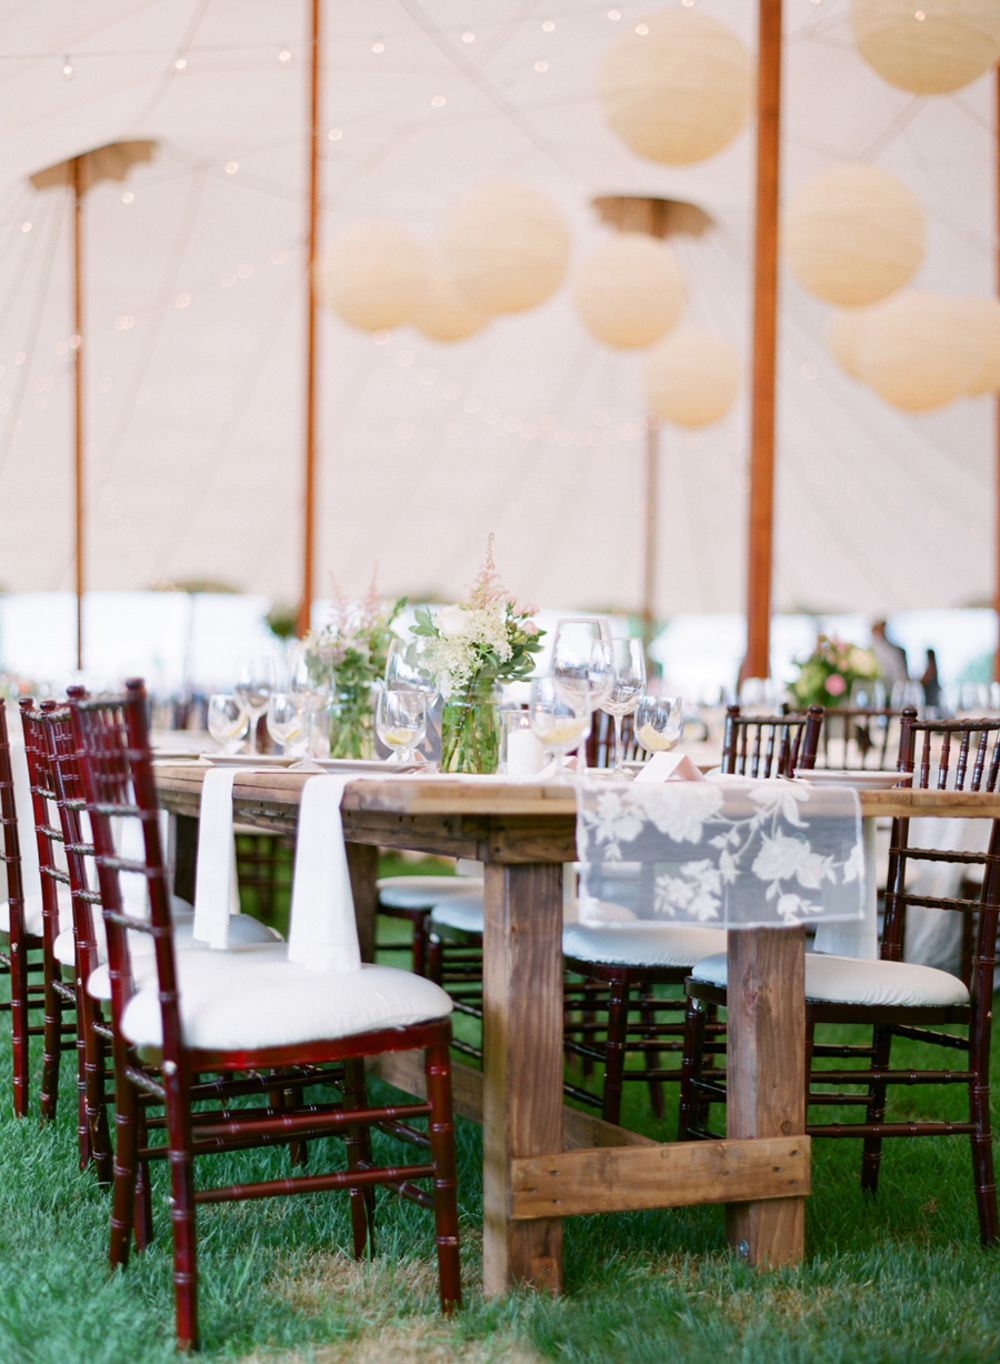 Horseshoe_Bay_Farms_Egg_Harbor_Wedding048.jpg